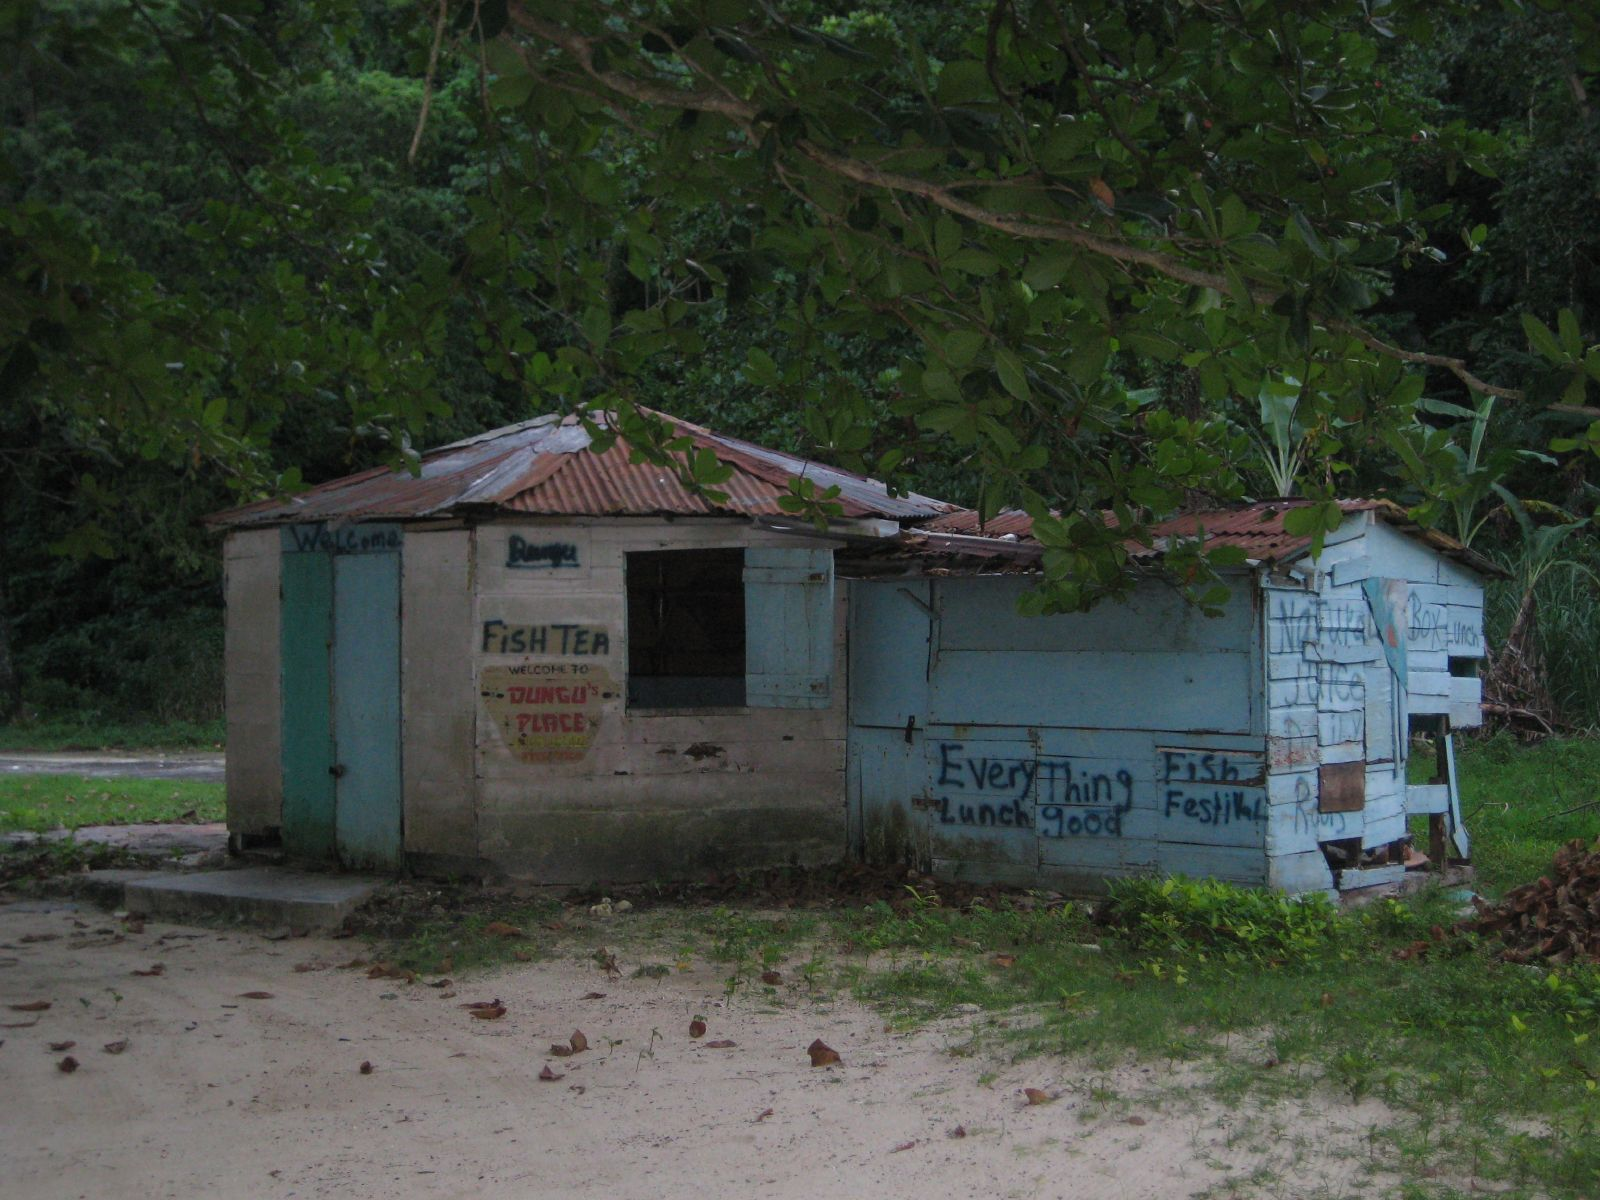 File dungu 39 s fish tea wikimedia commons for Jamaican butter fish